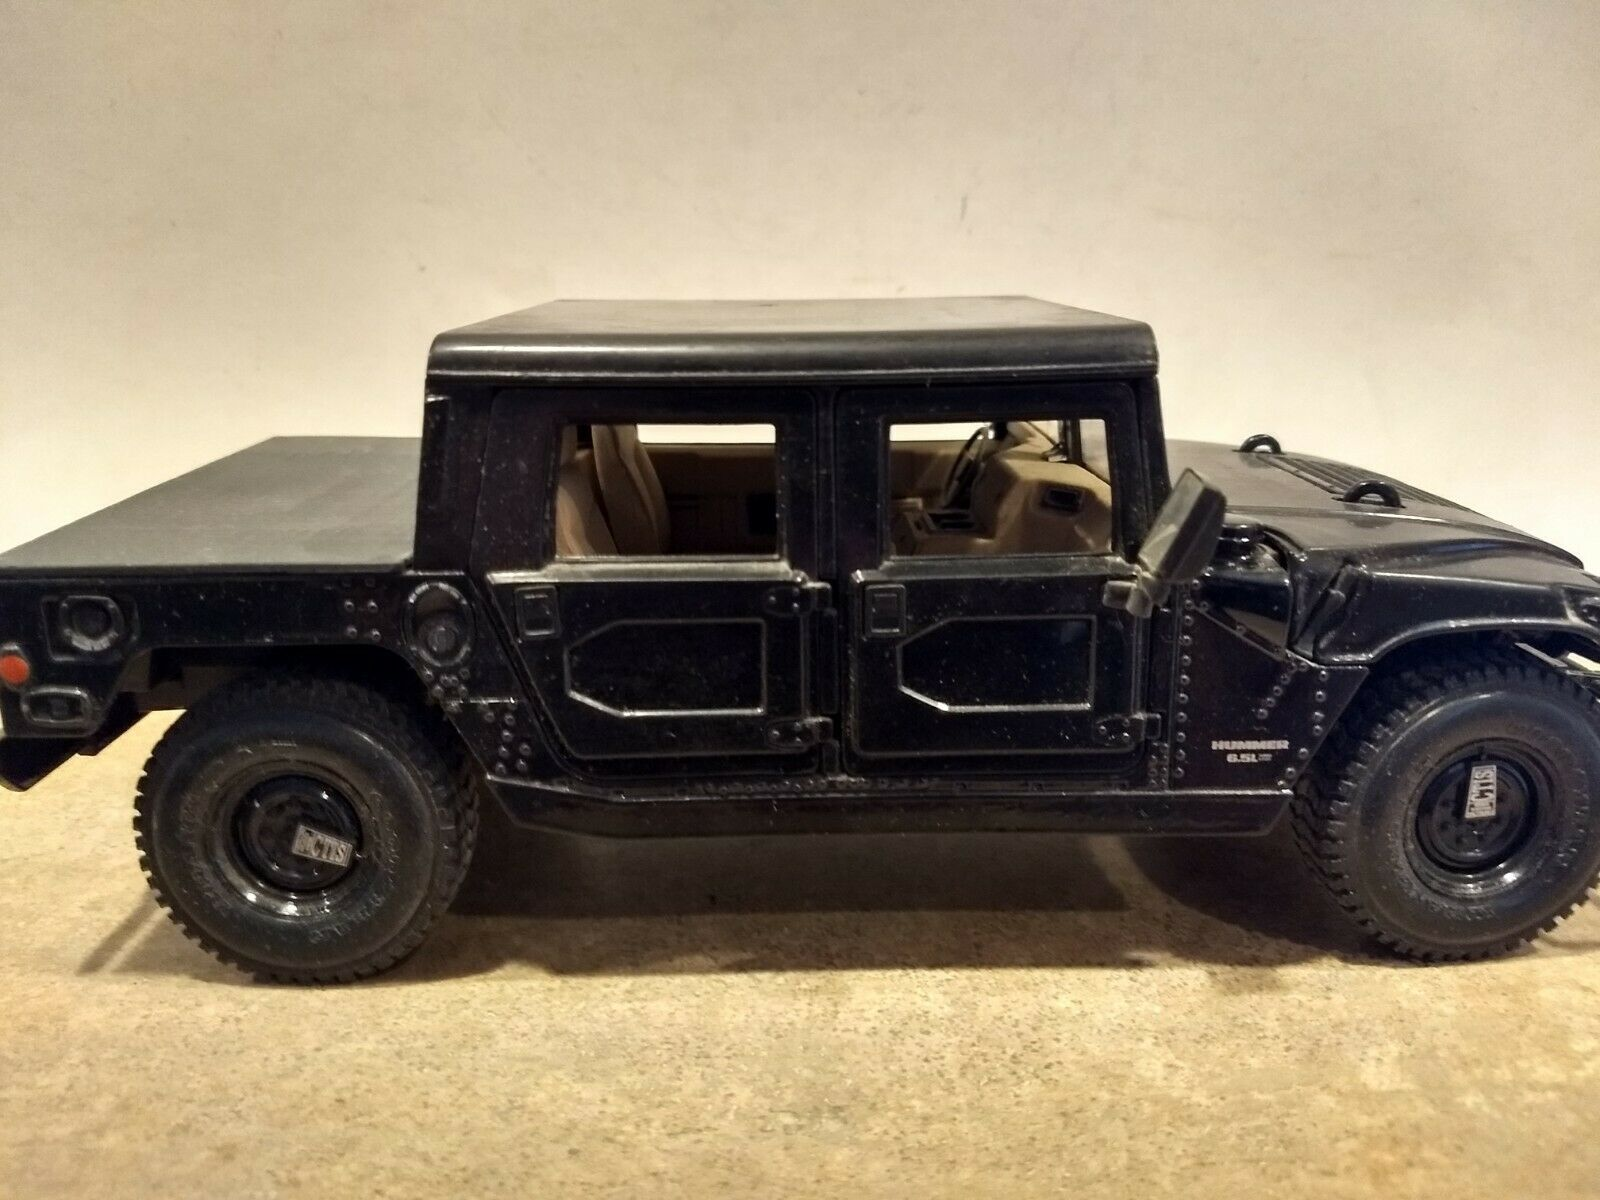 HUMMER 0.5 L. Scale 1 18. MAISTO. Metal and Plastic. Displayed. No Box,